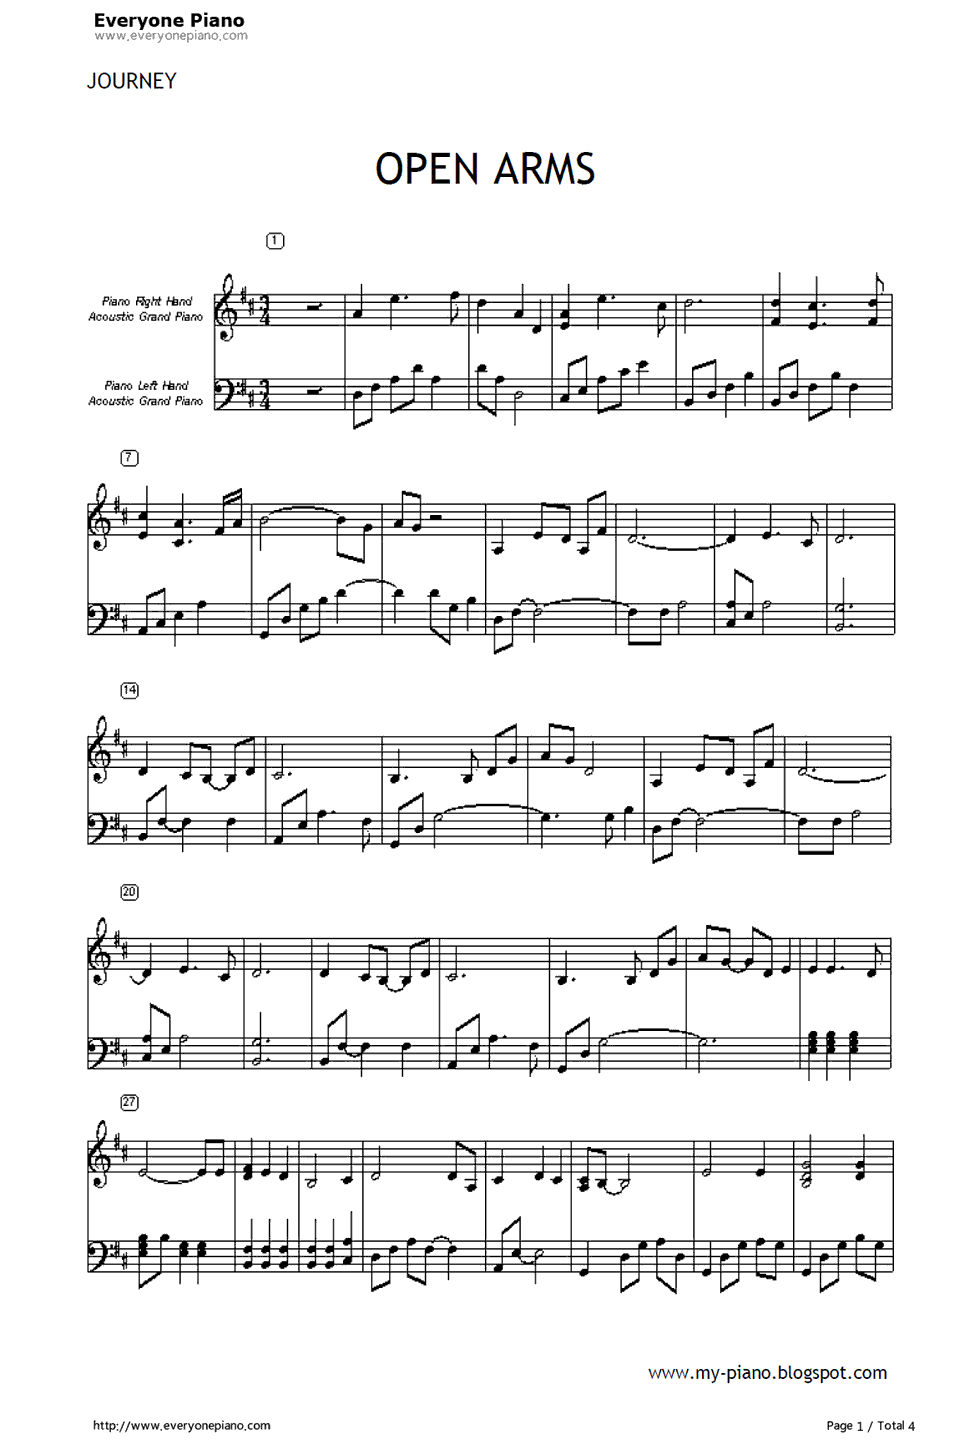 Open arms journey stave preview 1 free piano sheet music piano listen now print sheet open arms journey stave preview 1 hexwebz Images